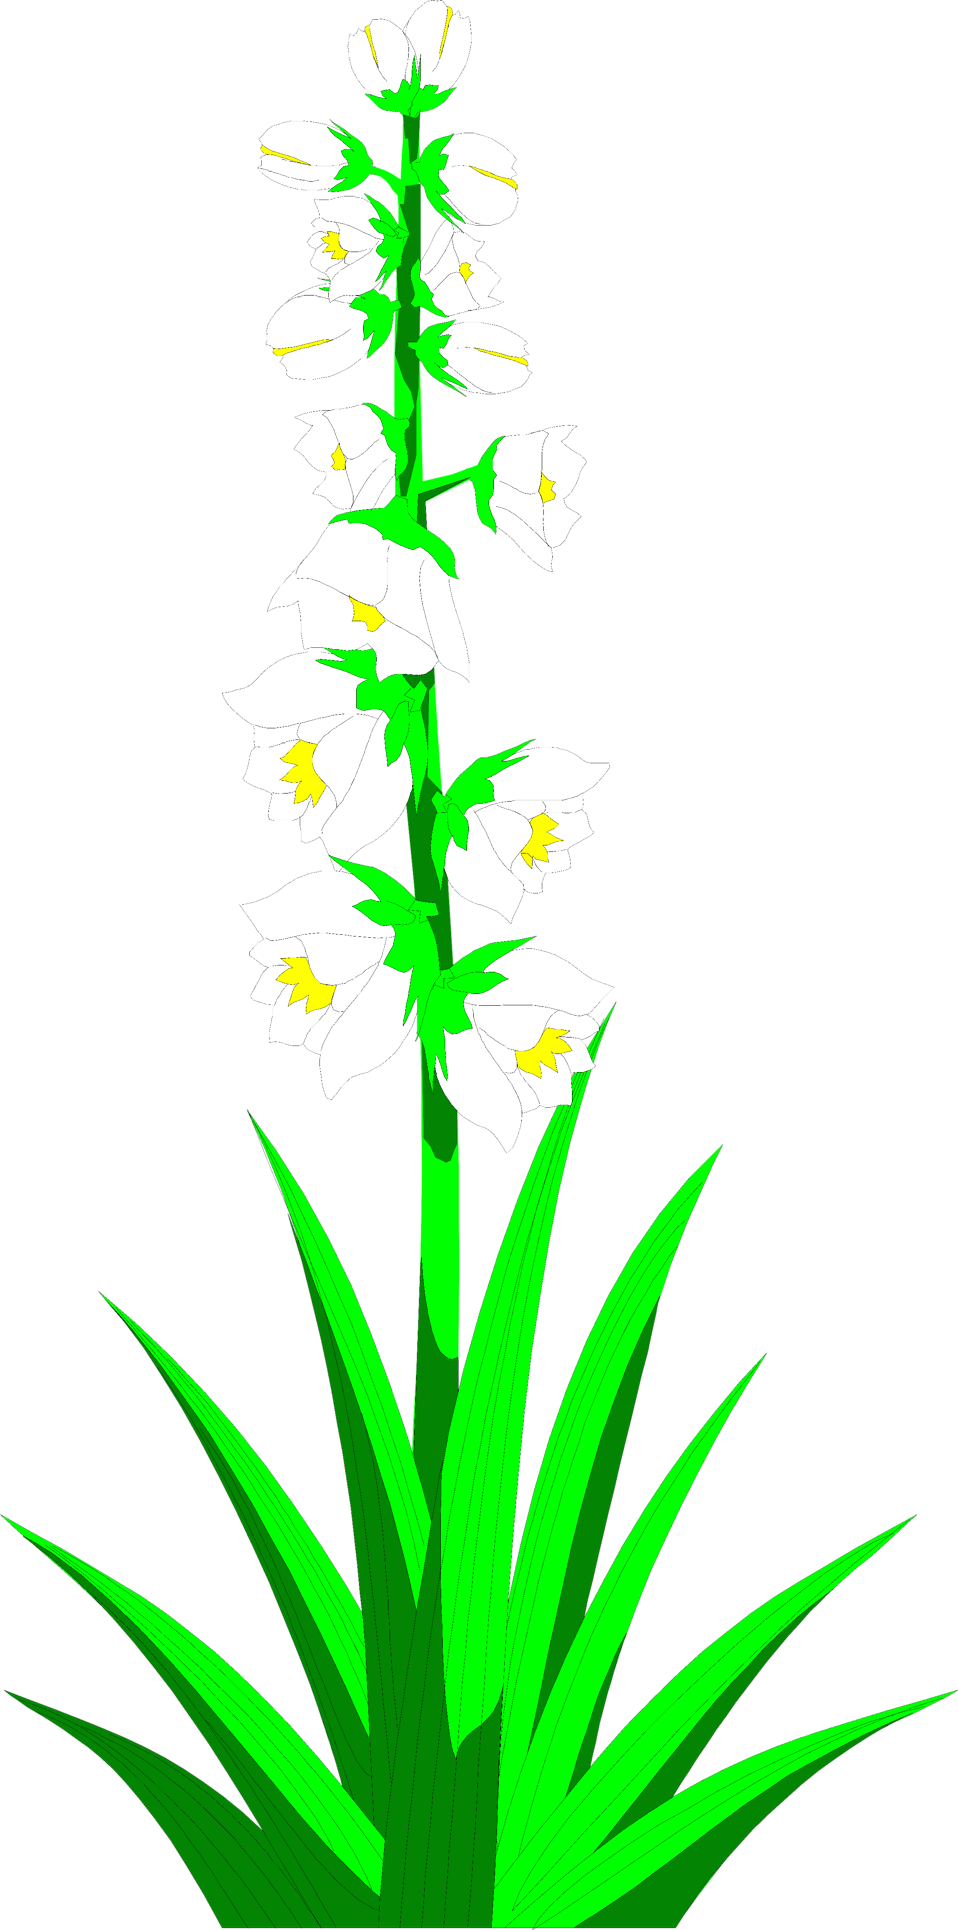 Illustration of white yucca flowers : Free Stock Photo